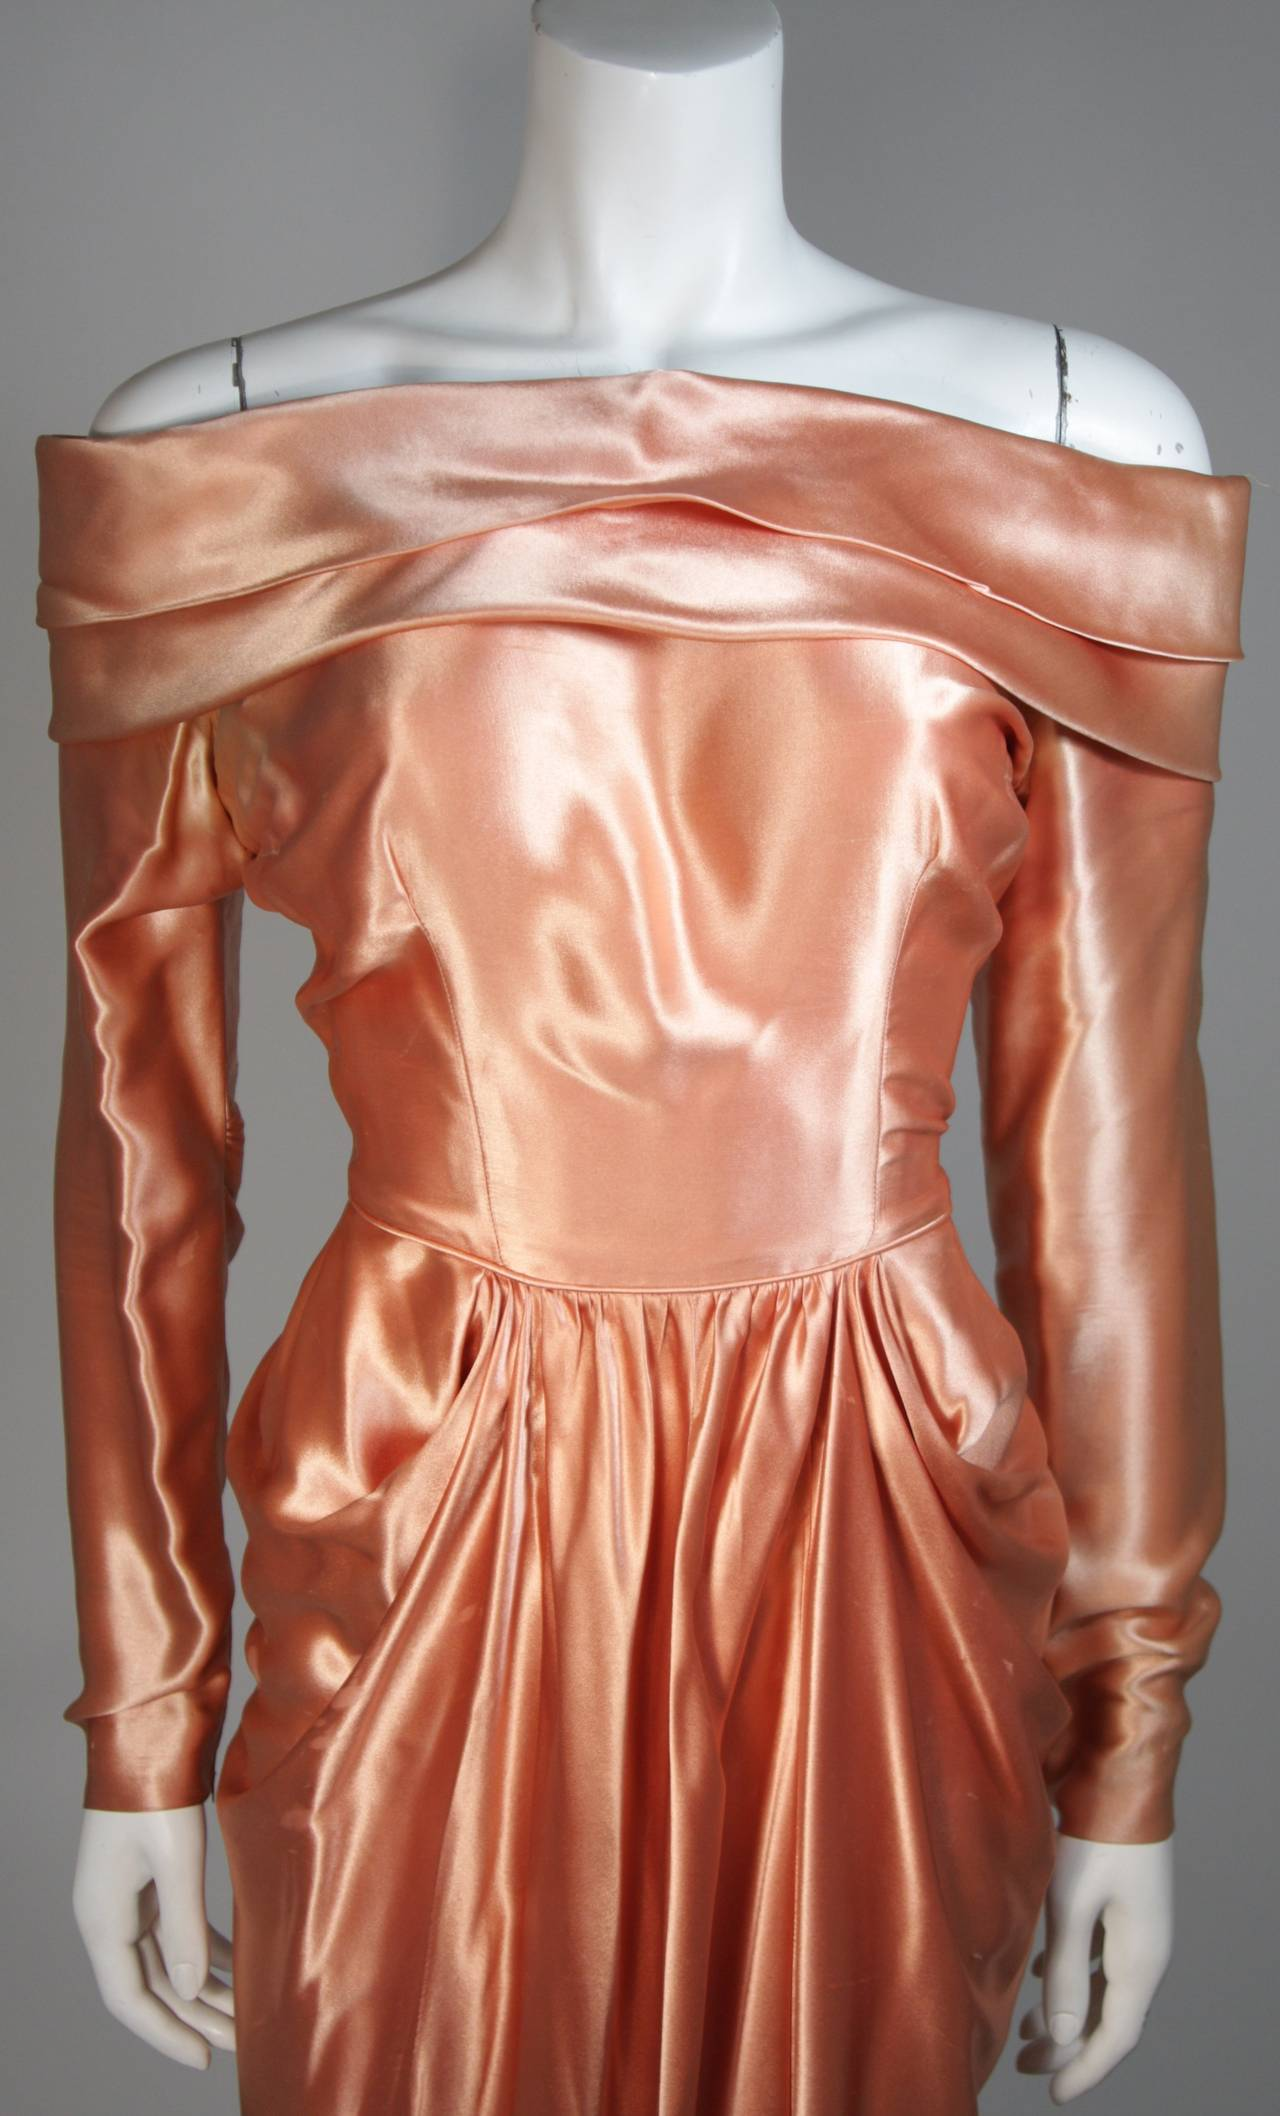 Brown Ceil Chapman Draped Silk Gown in a Peach Champagne Hue Size 4-6 For Sale